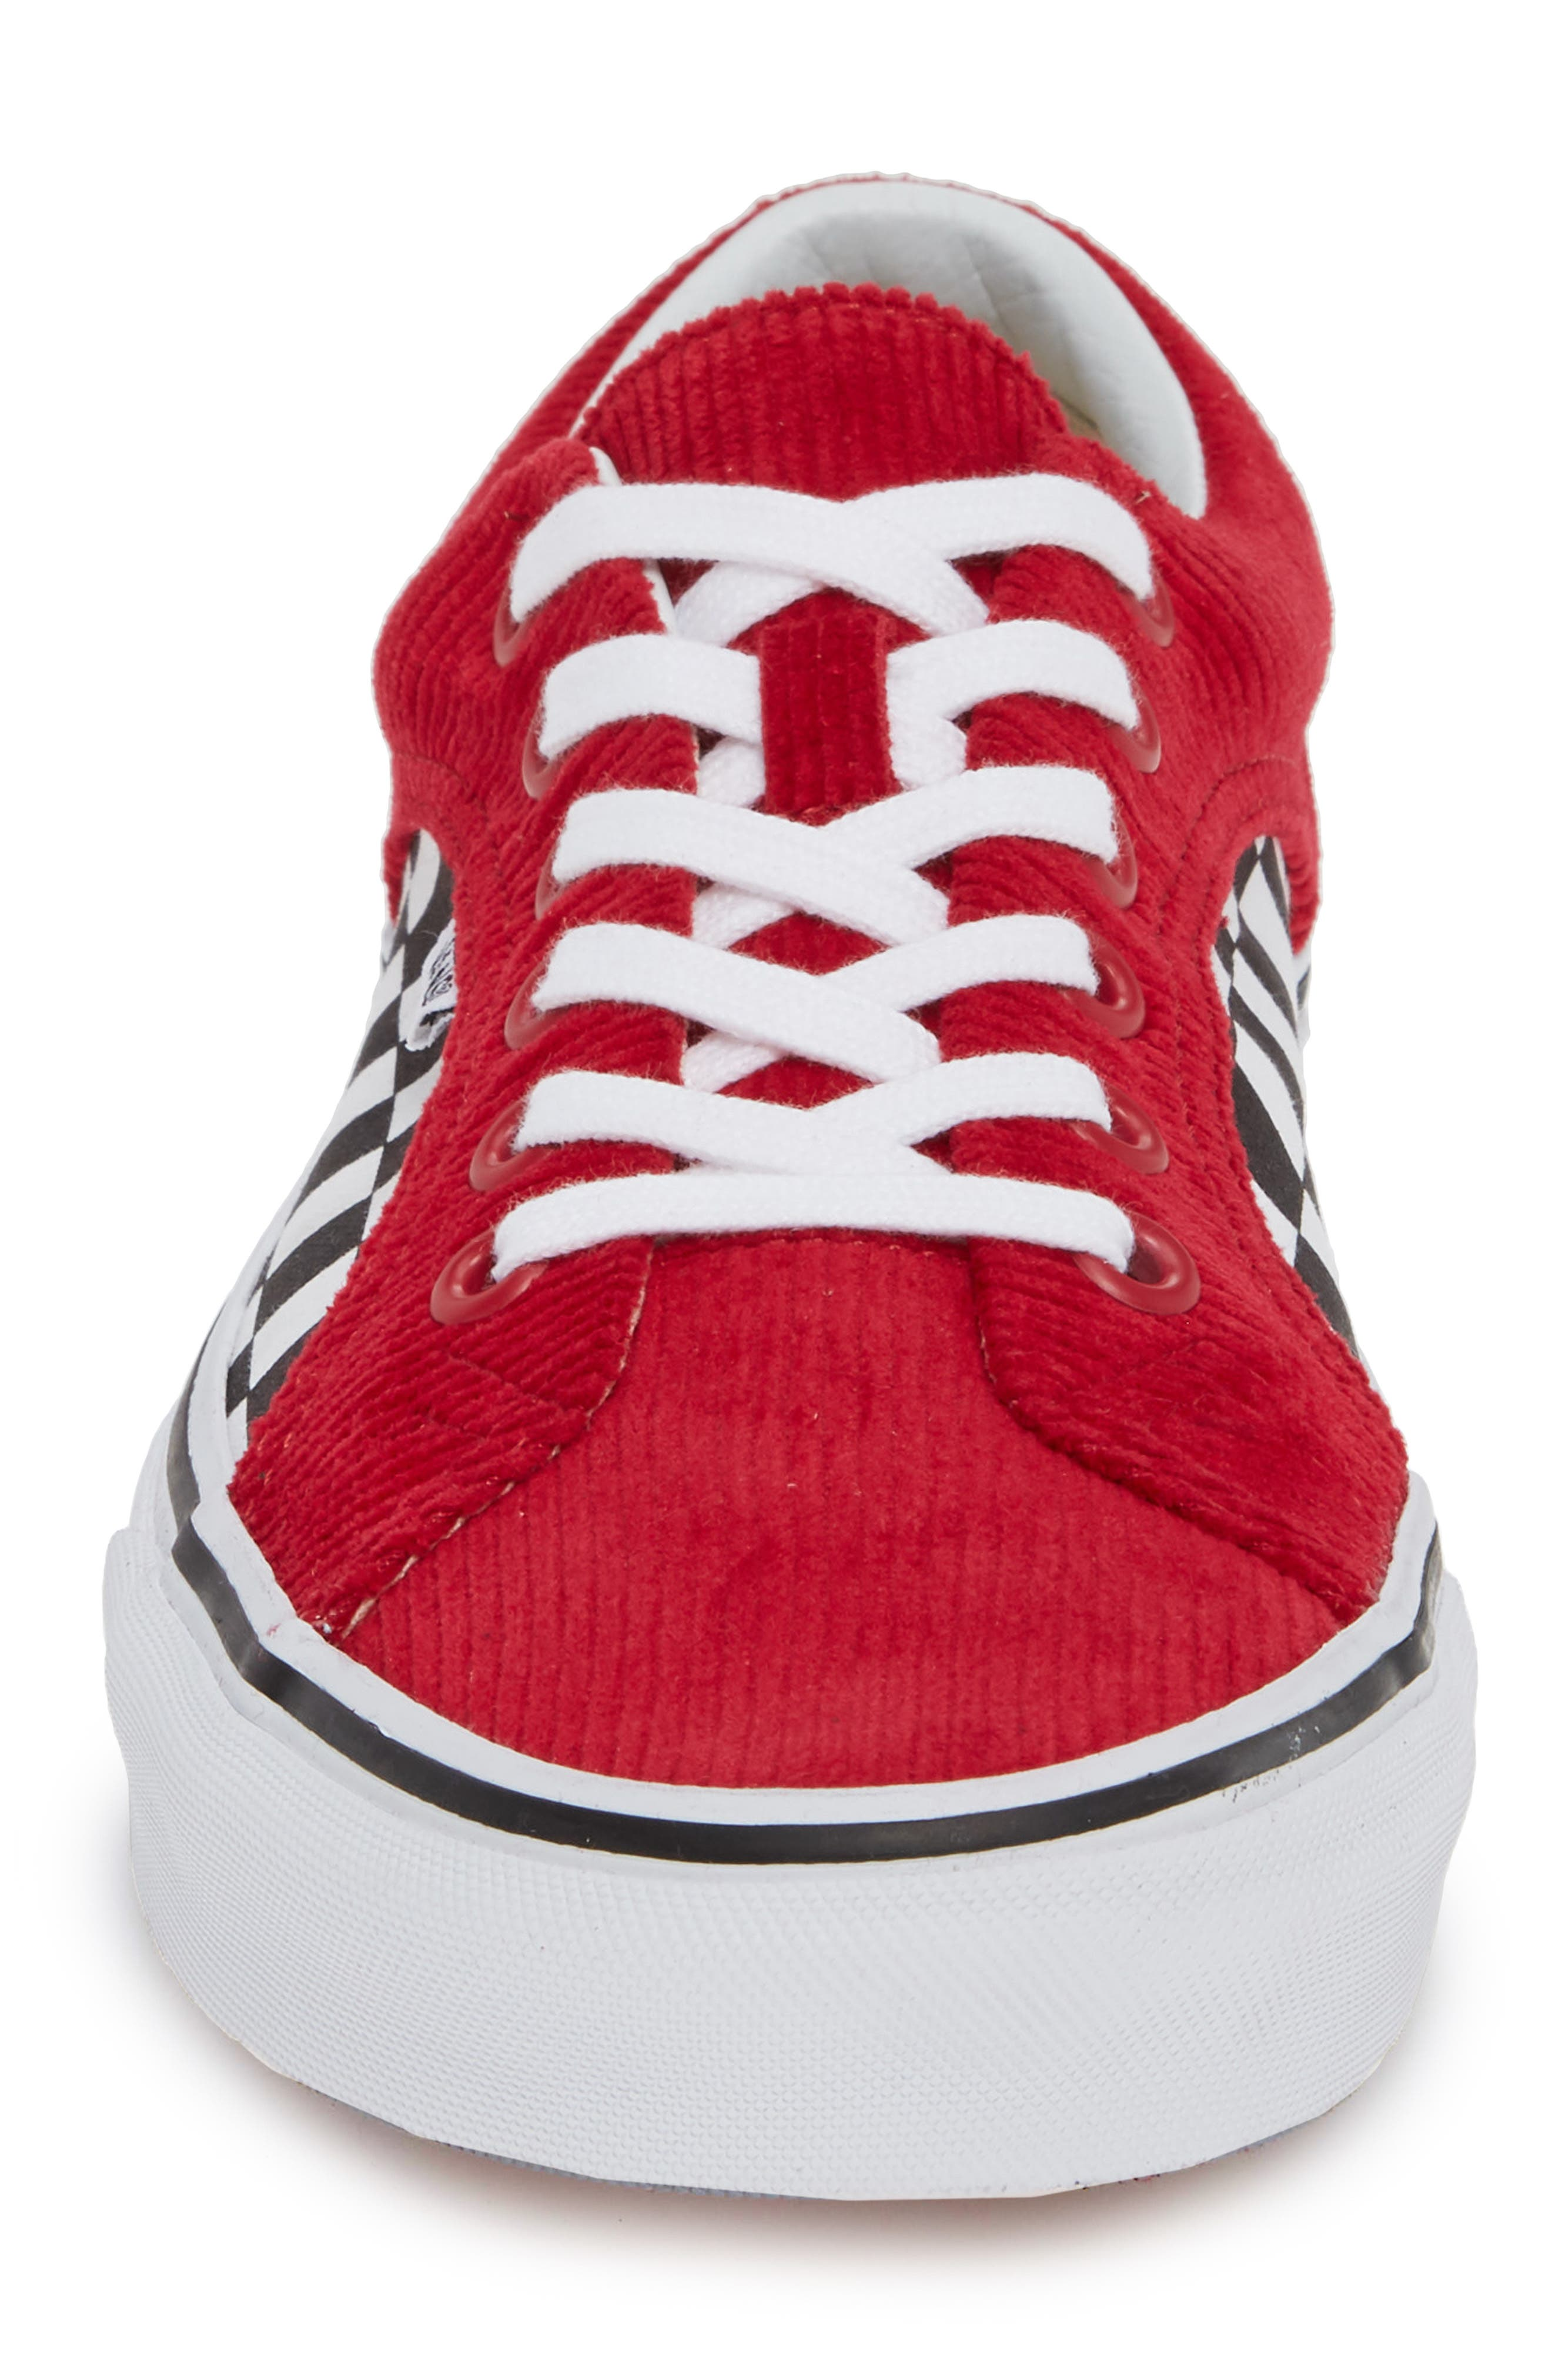 Lampin Corduroy Sneaker,                             Alternate thumbnail 4, color,                             SCOOTER/ TRUE WHITE CANVAS